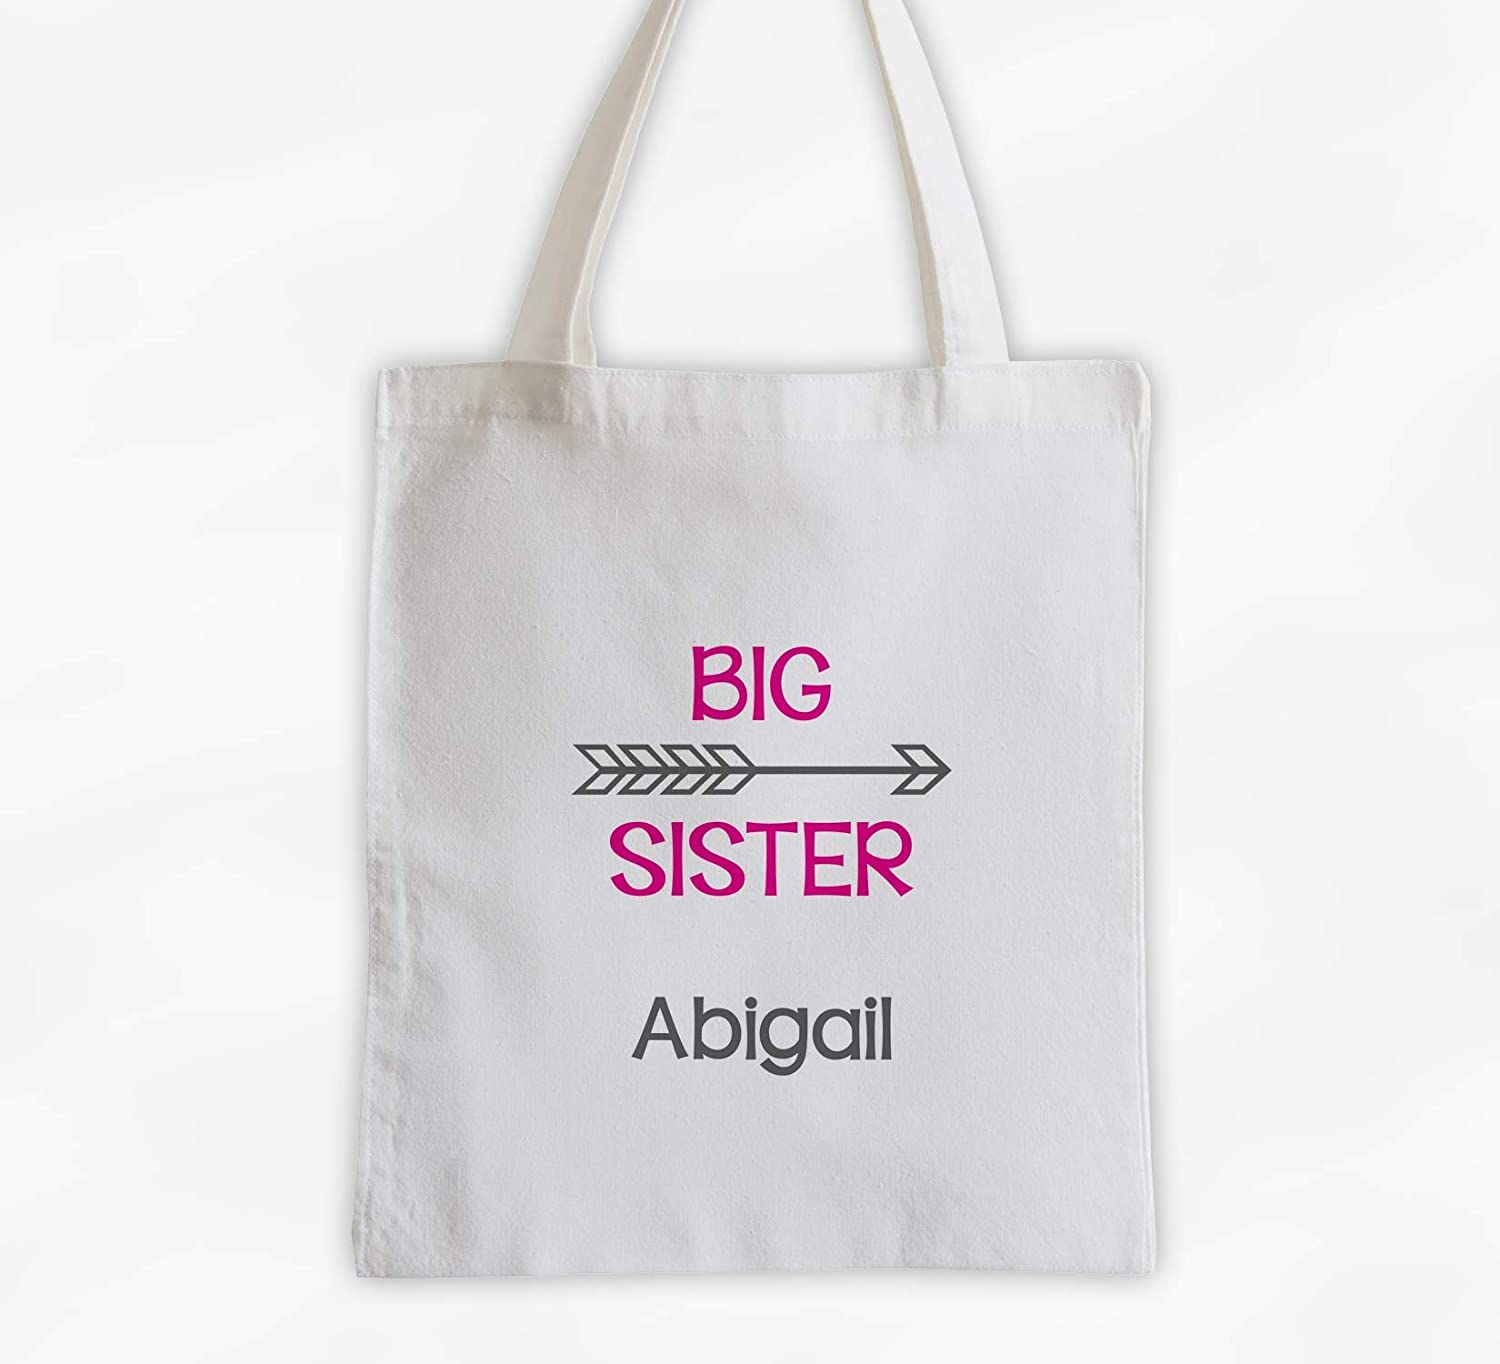 Big Sister Tote Bag with Arrow Year-end gift Cotton Easy-to-use Girls Overn Personalized -